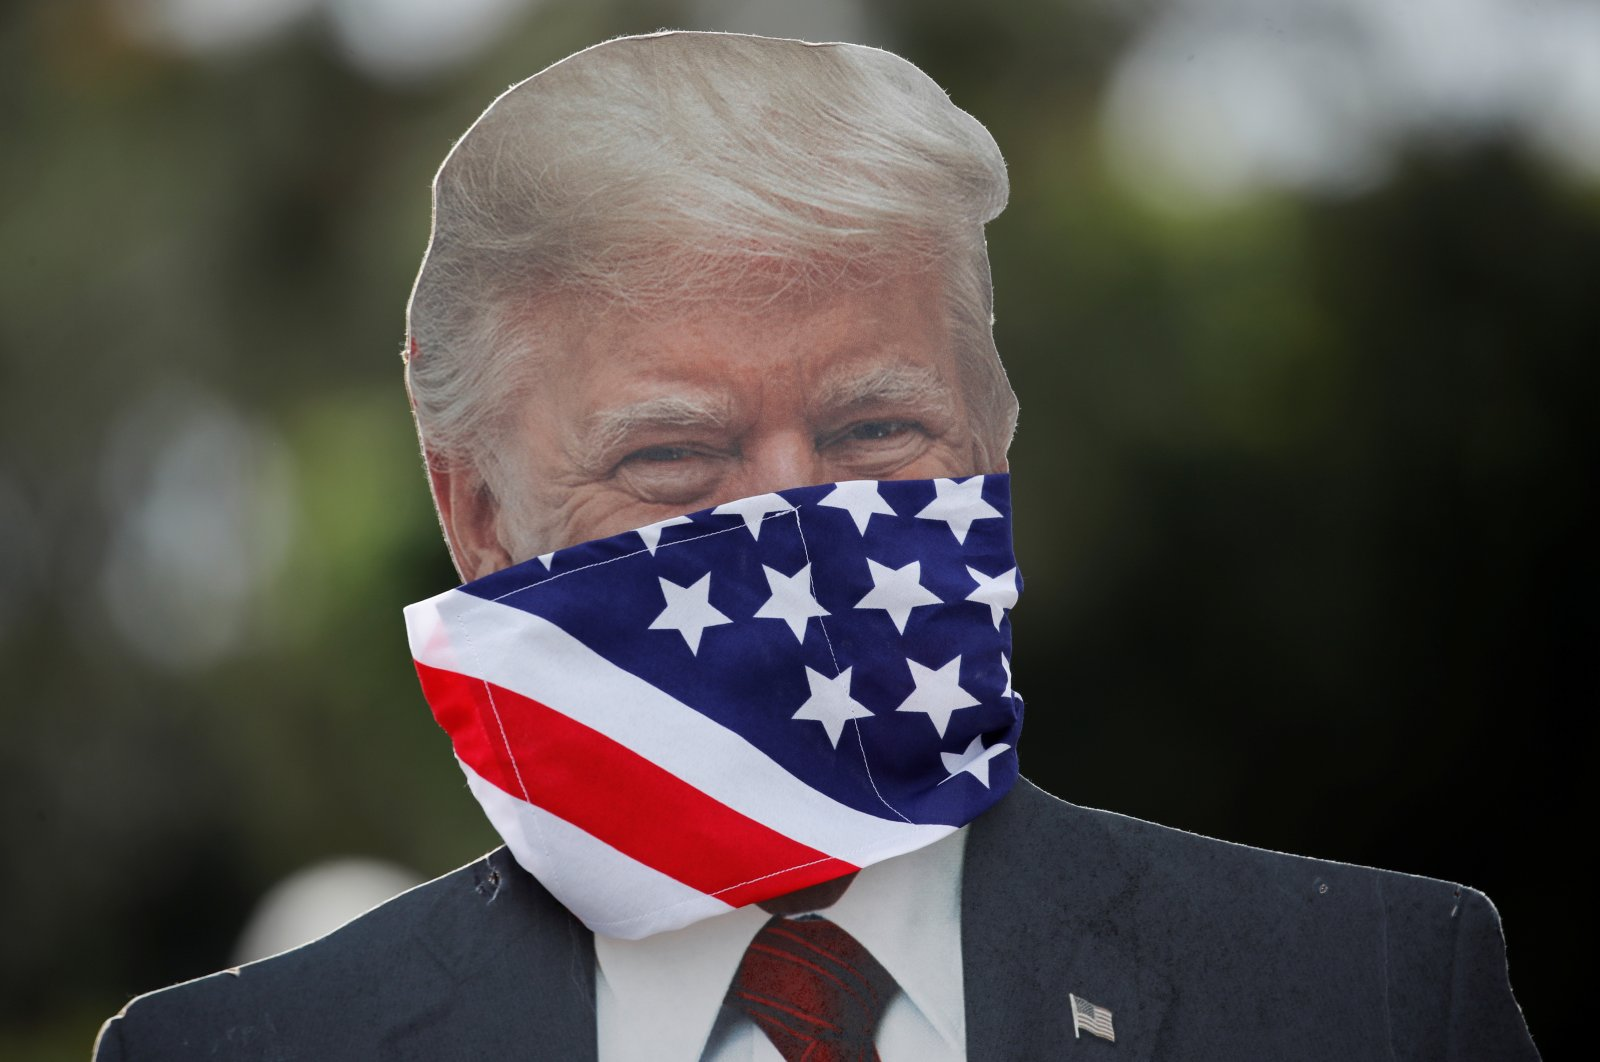 A cardboard cutout of U.S. President Donald Trump wearing a mask is seen at a protest over the stay-at-home orders involving the closure of beaches and walking paths during the outbreak of the coronavirus in Encinitas, California, U.S., April 19, 2020. (Reuters Photo)